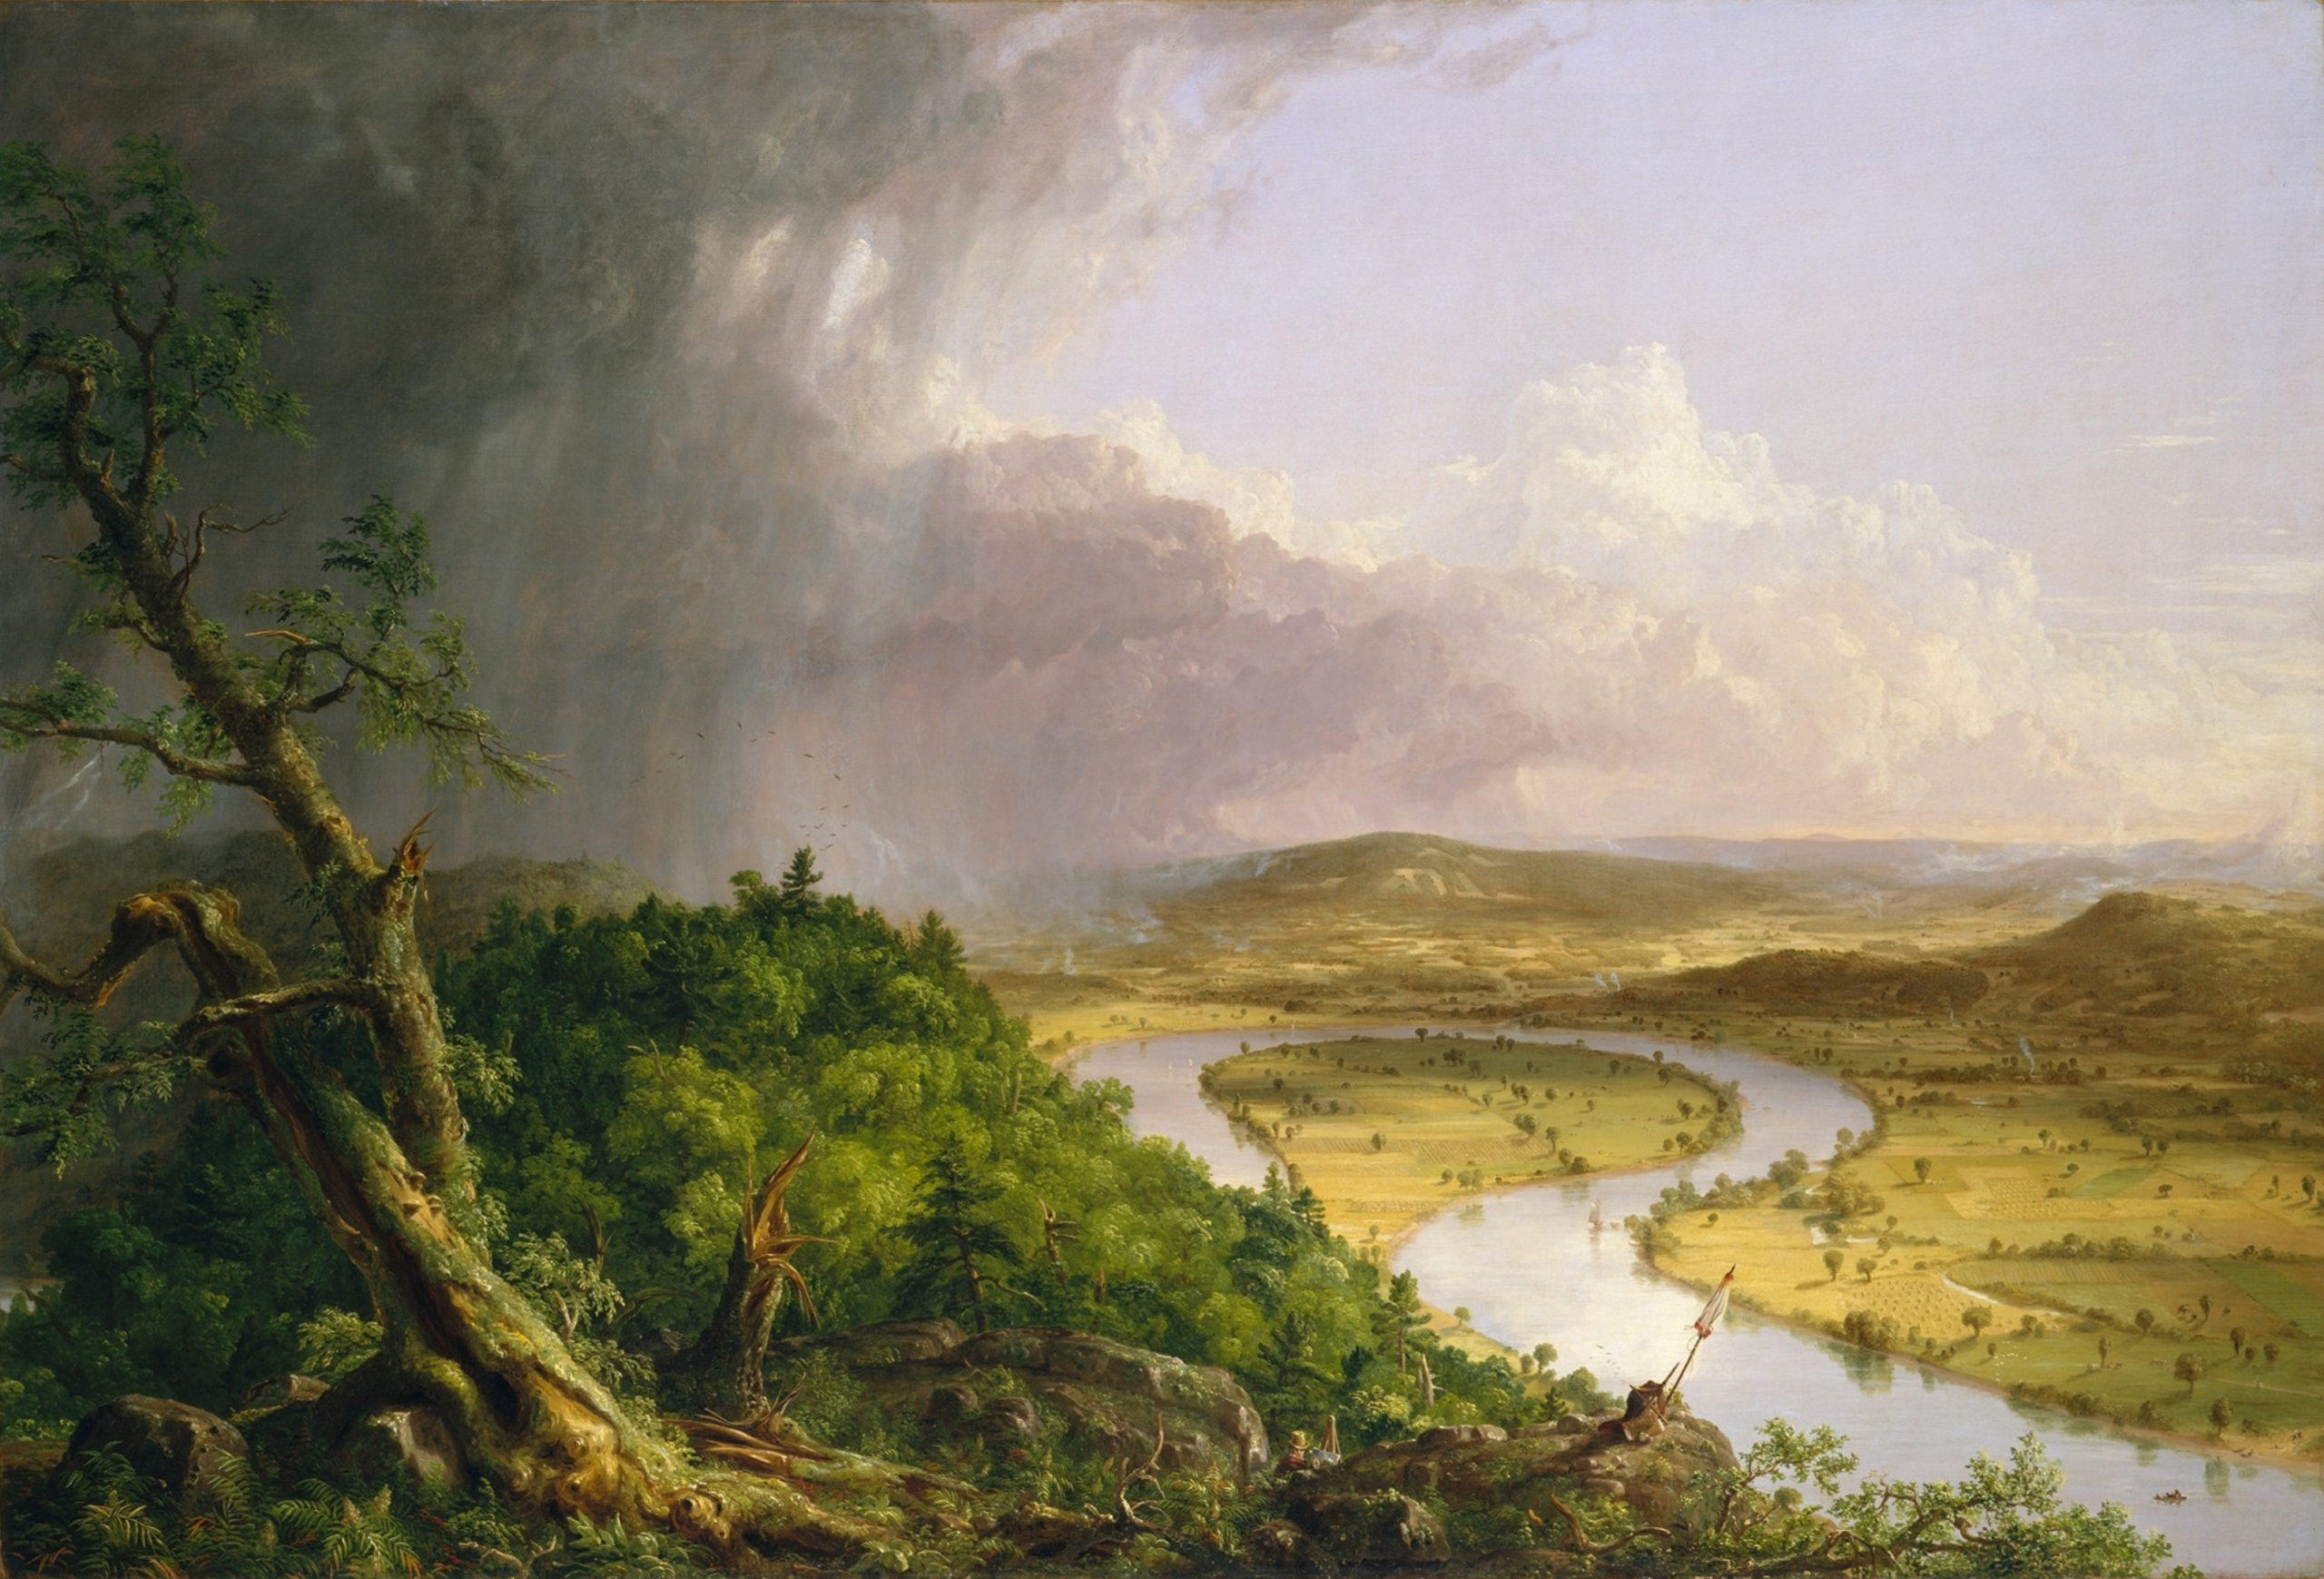 Painting of Nature by Thomas Cle